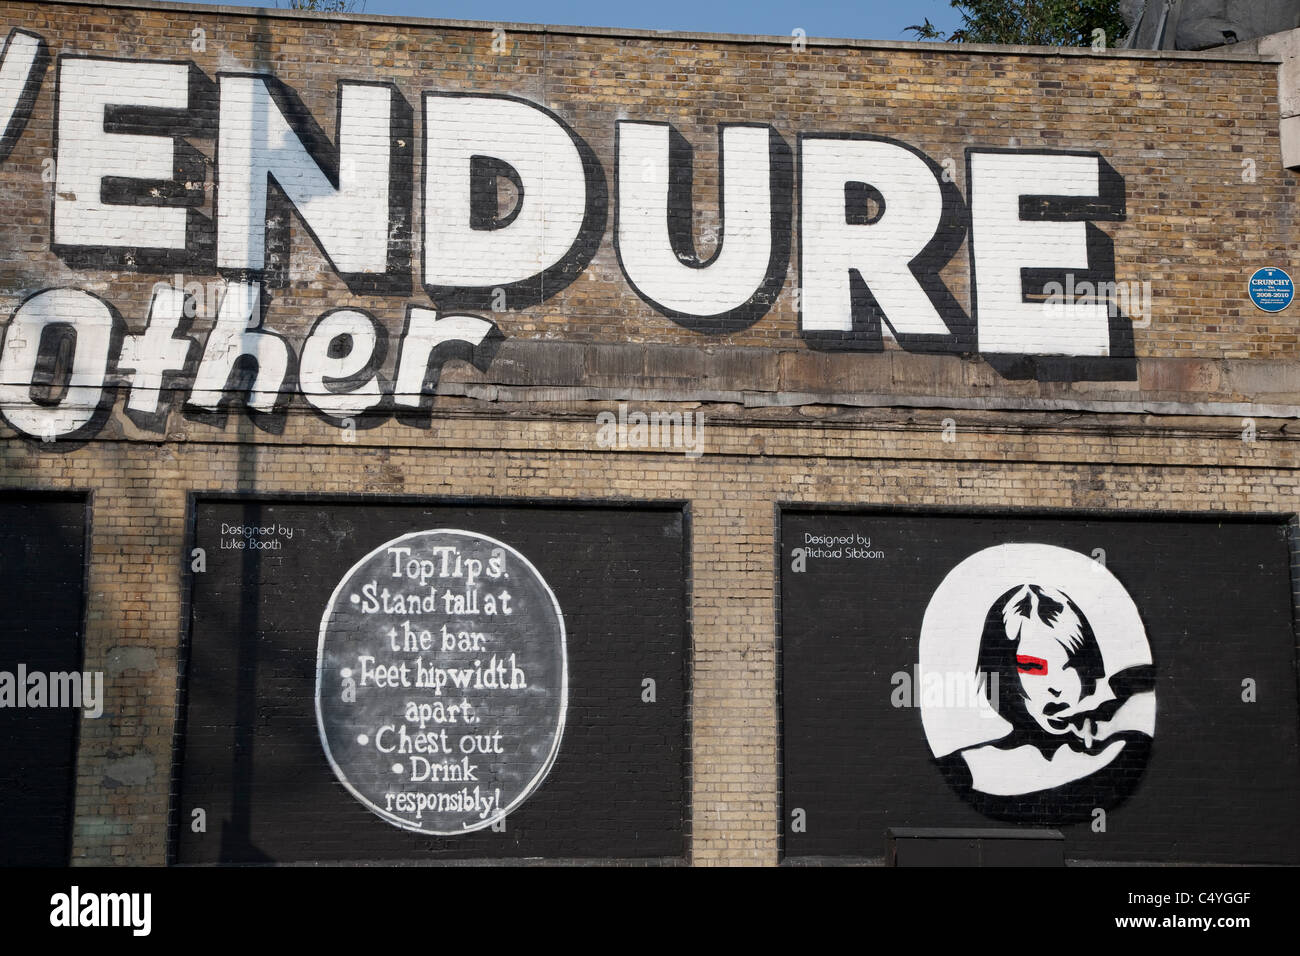 Lets Adore and Endure Each Other Stefan Powers - Art Mural in Shoreditch London with designs from Luke Booth and - Stock Image